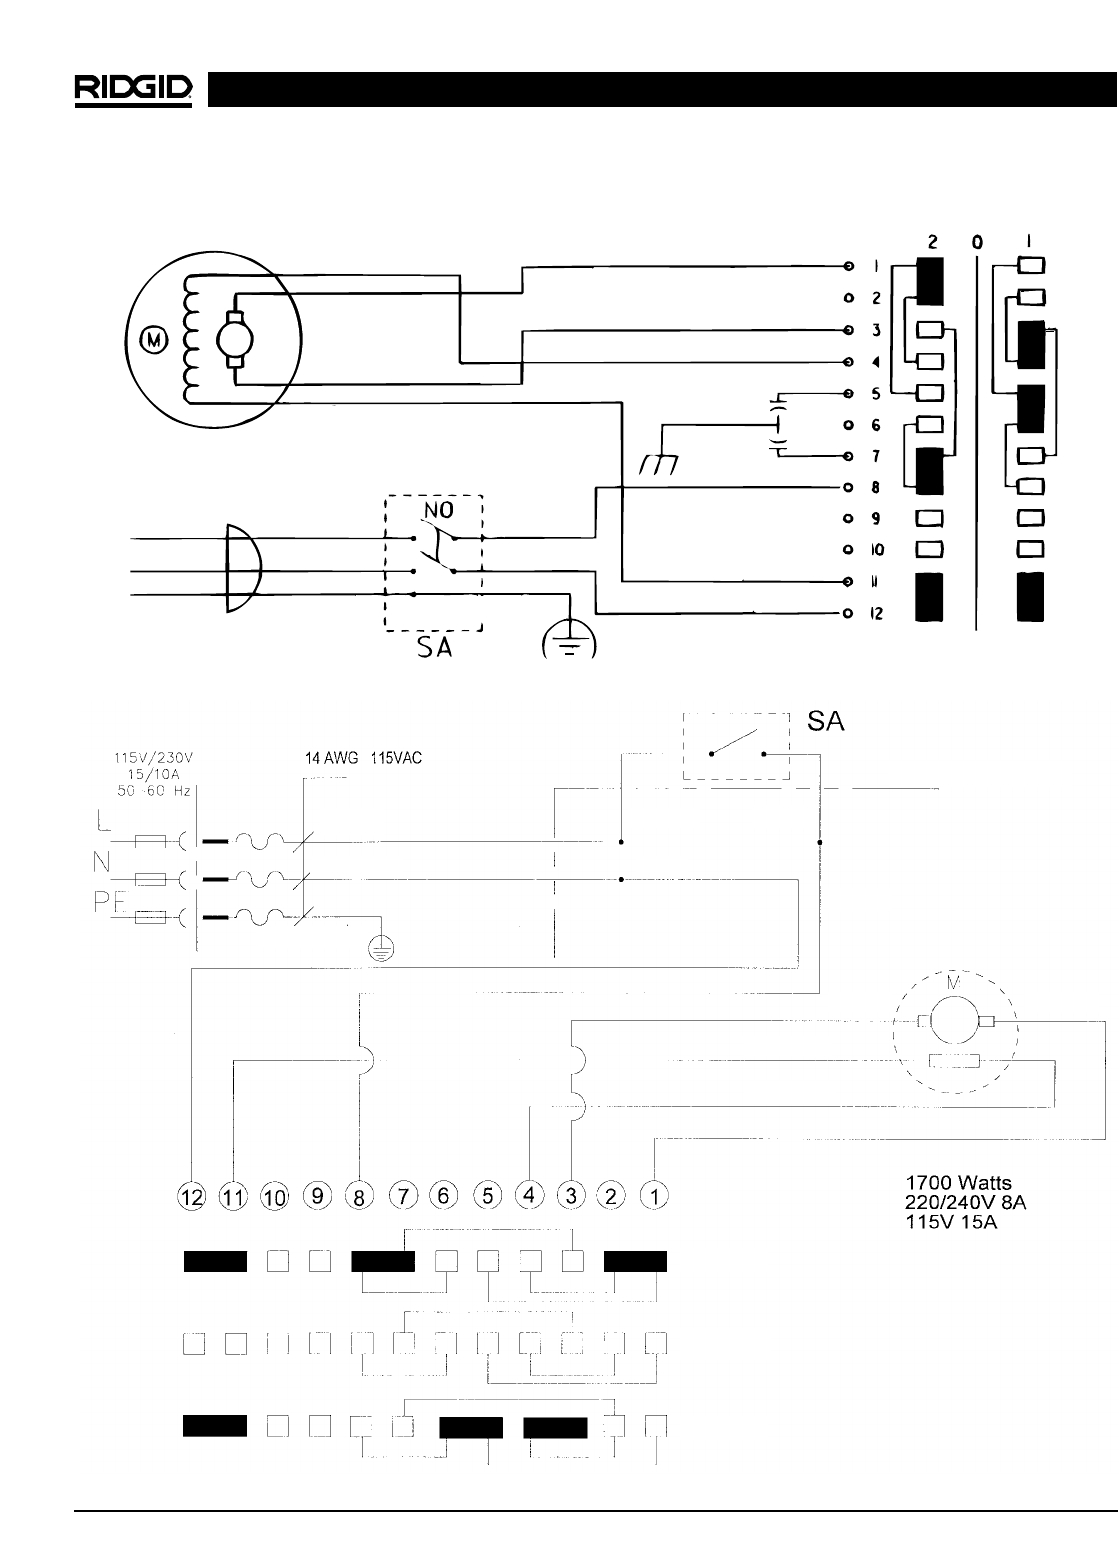 Wiring Diagram For 2 Switch And 2 Light